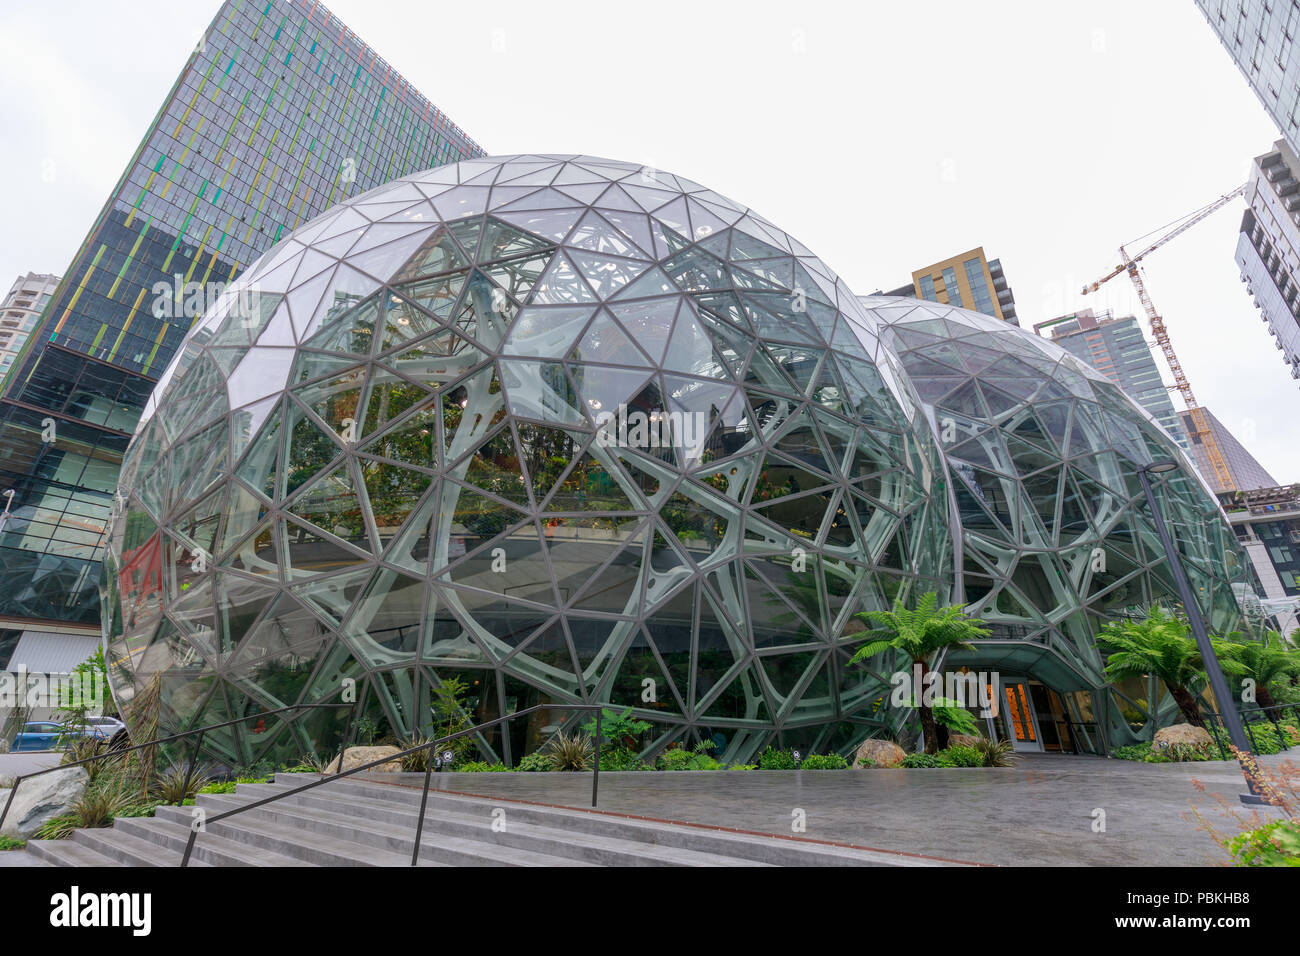 Seattle, Washington - June 30, 2018 : View of Amazon the Spheres at its Seattle headquarters and office tower in Seattle WA USA Stock Photo